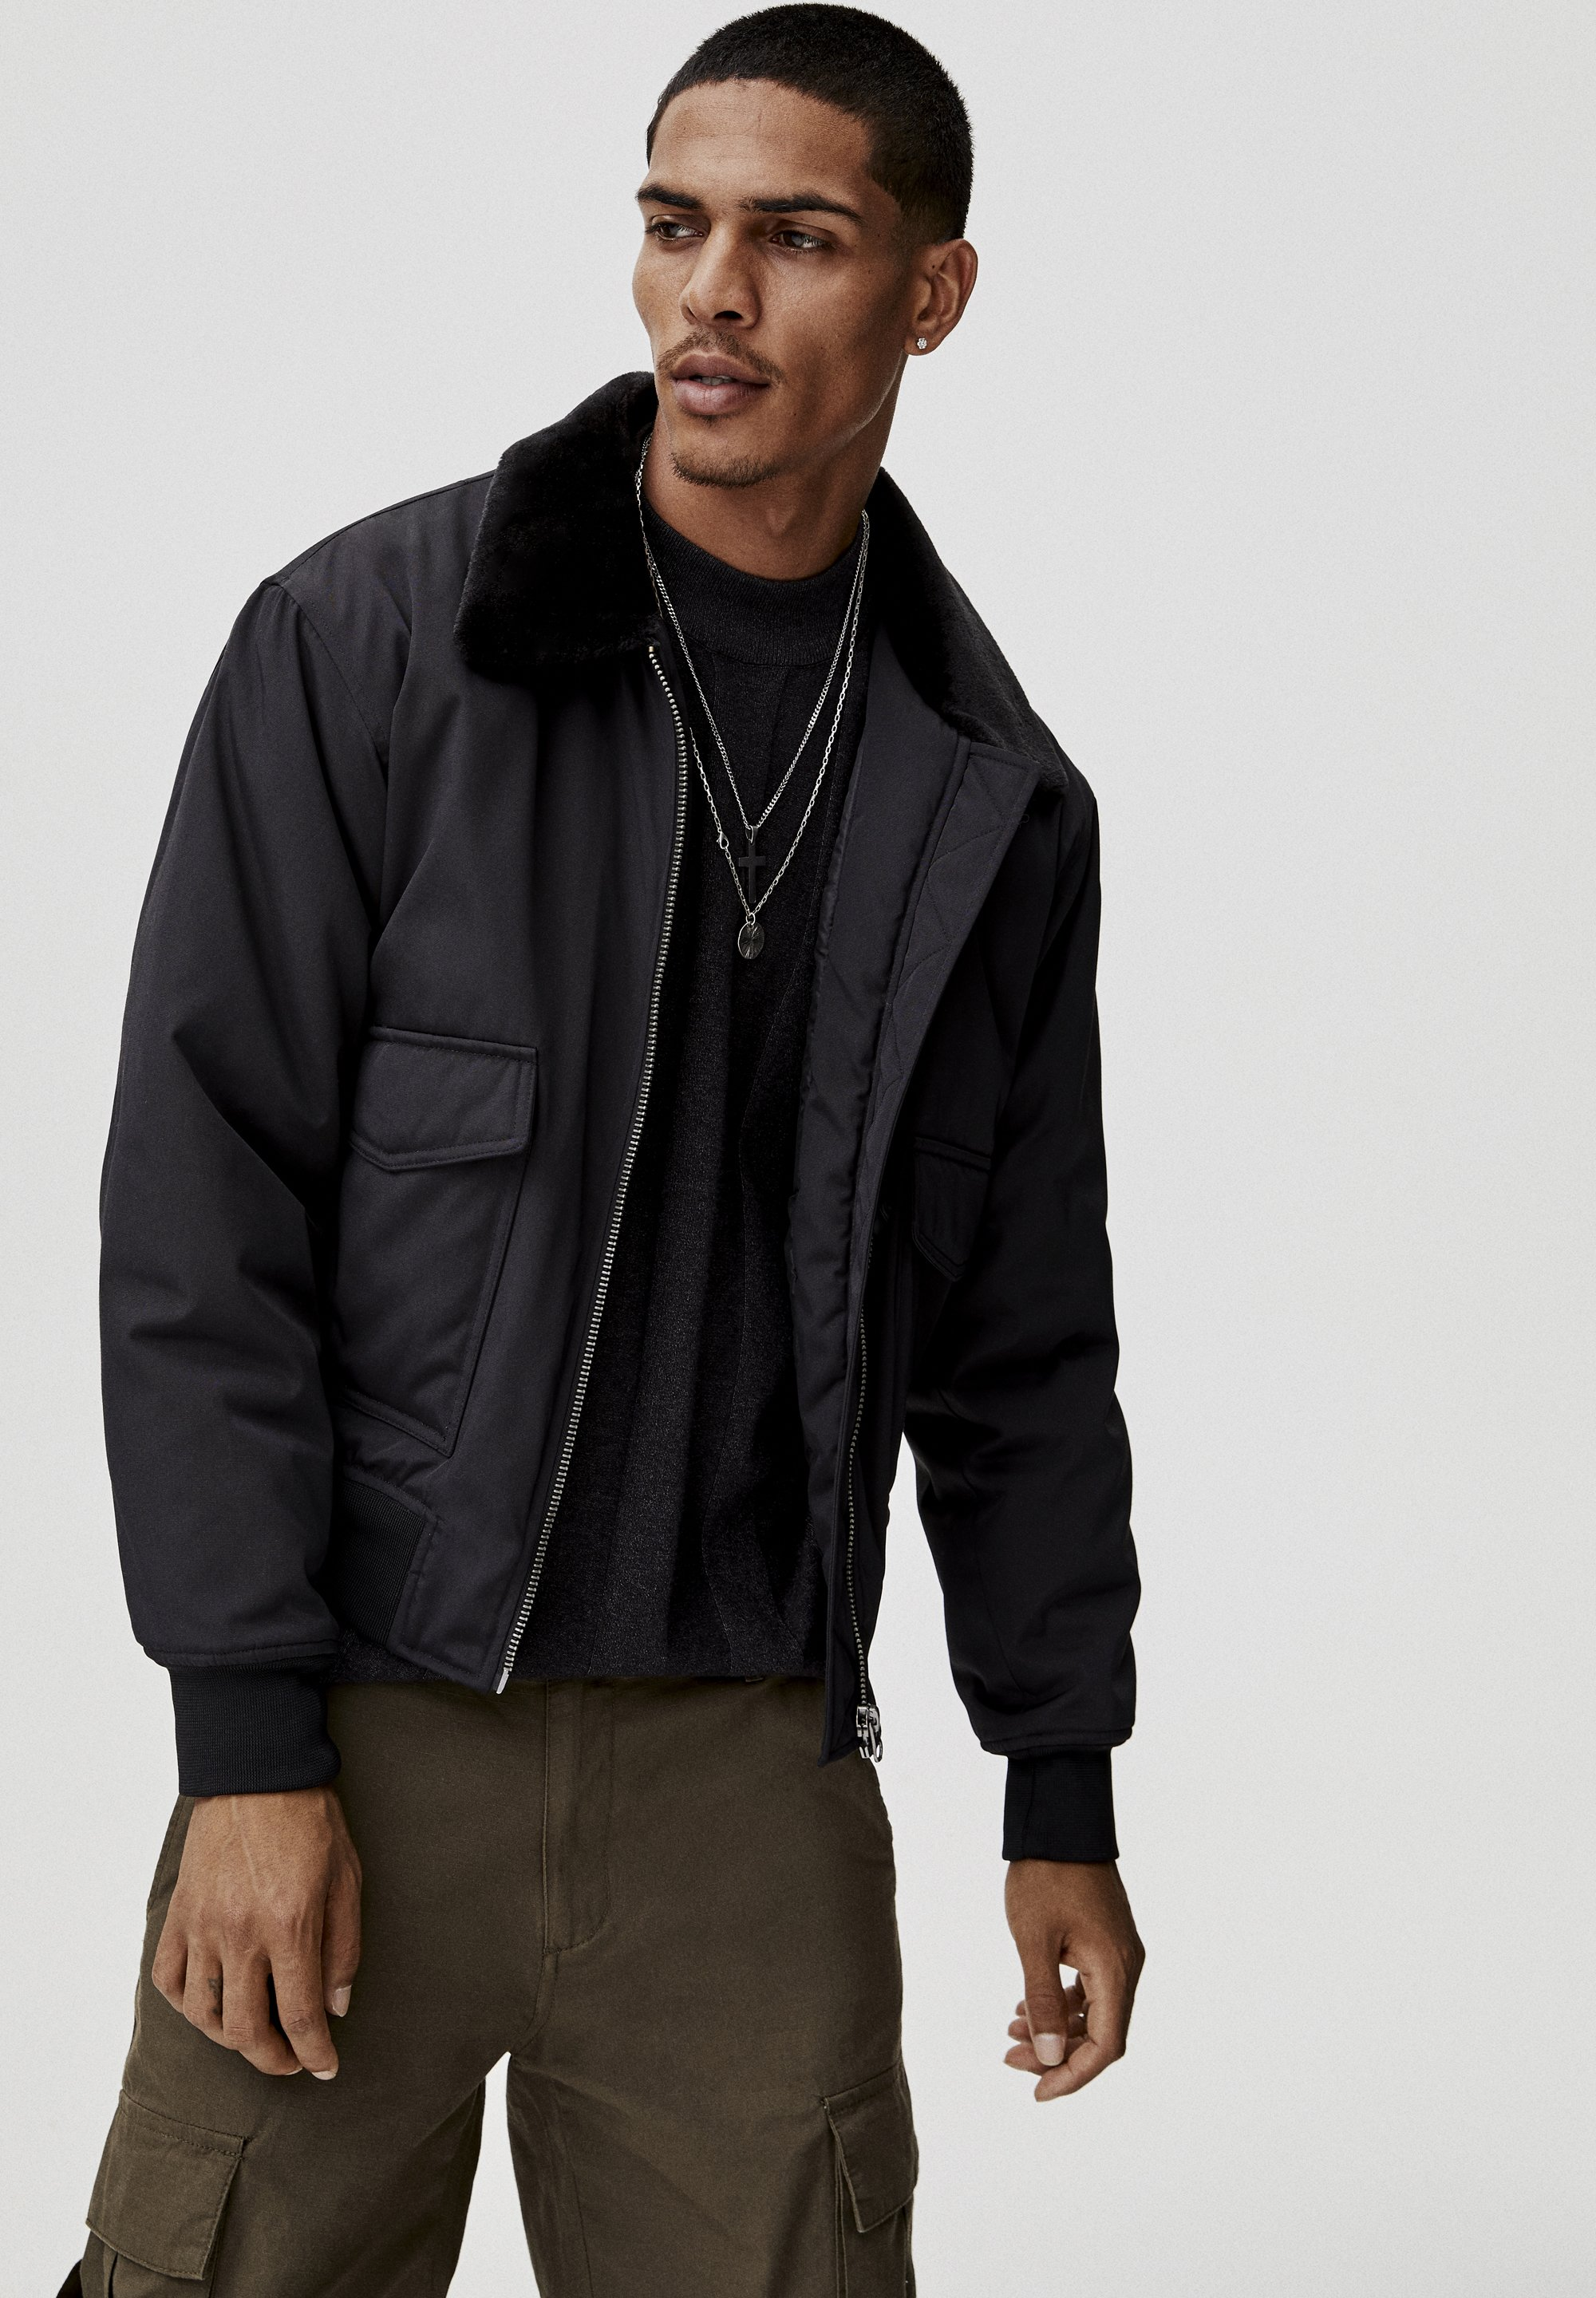 amp;bear Invernale Pull Giacca amp;bear Giacca Black Pull Invernale Black Pull amp;bear rCtsxBhdQ